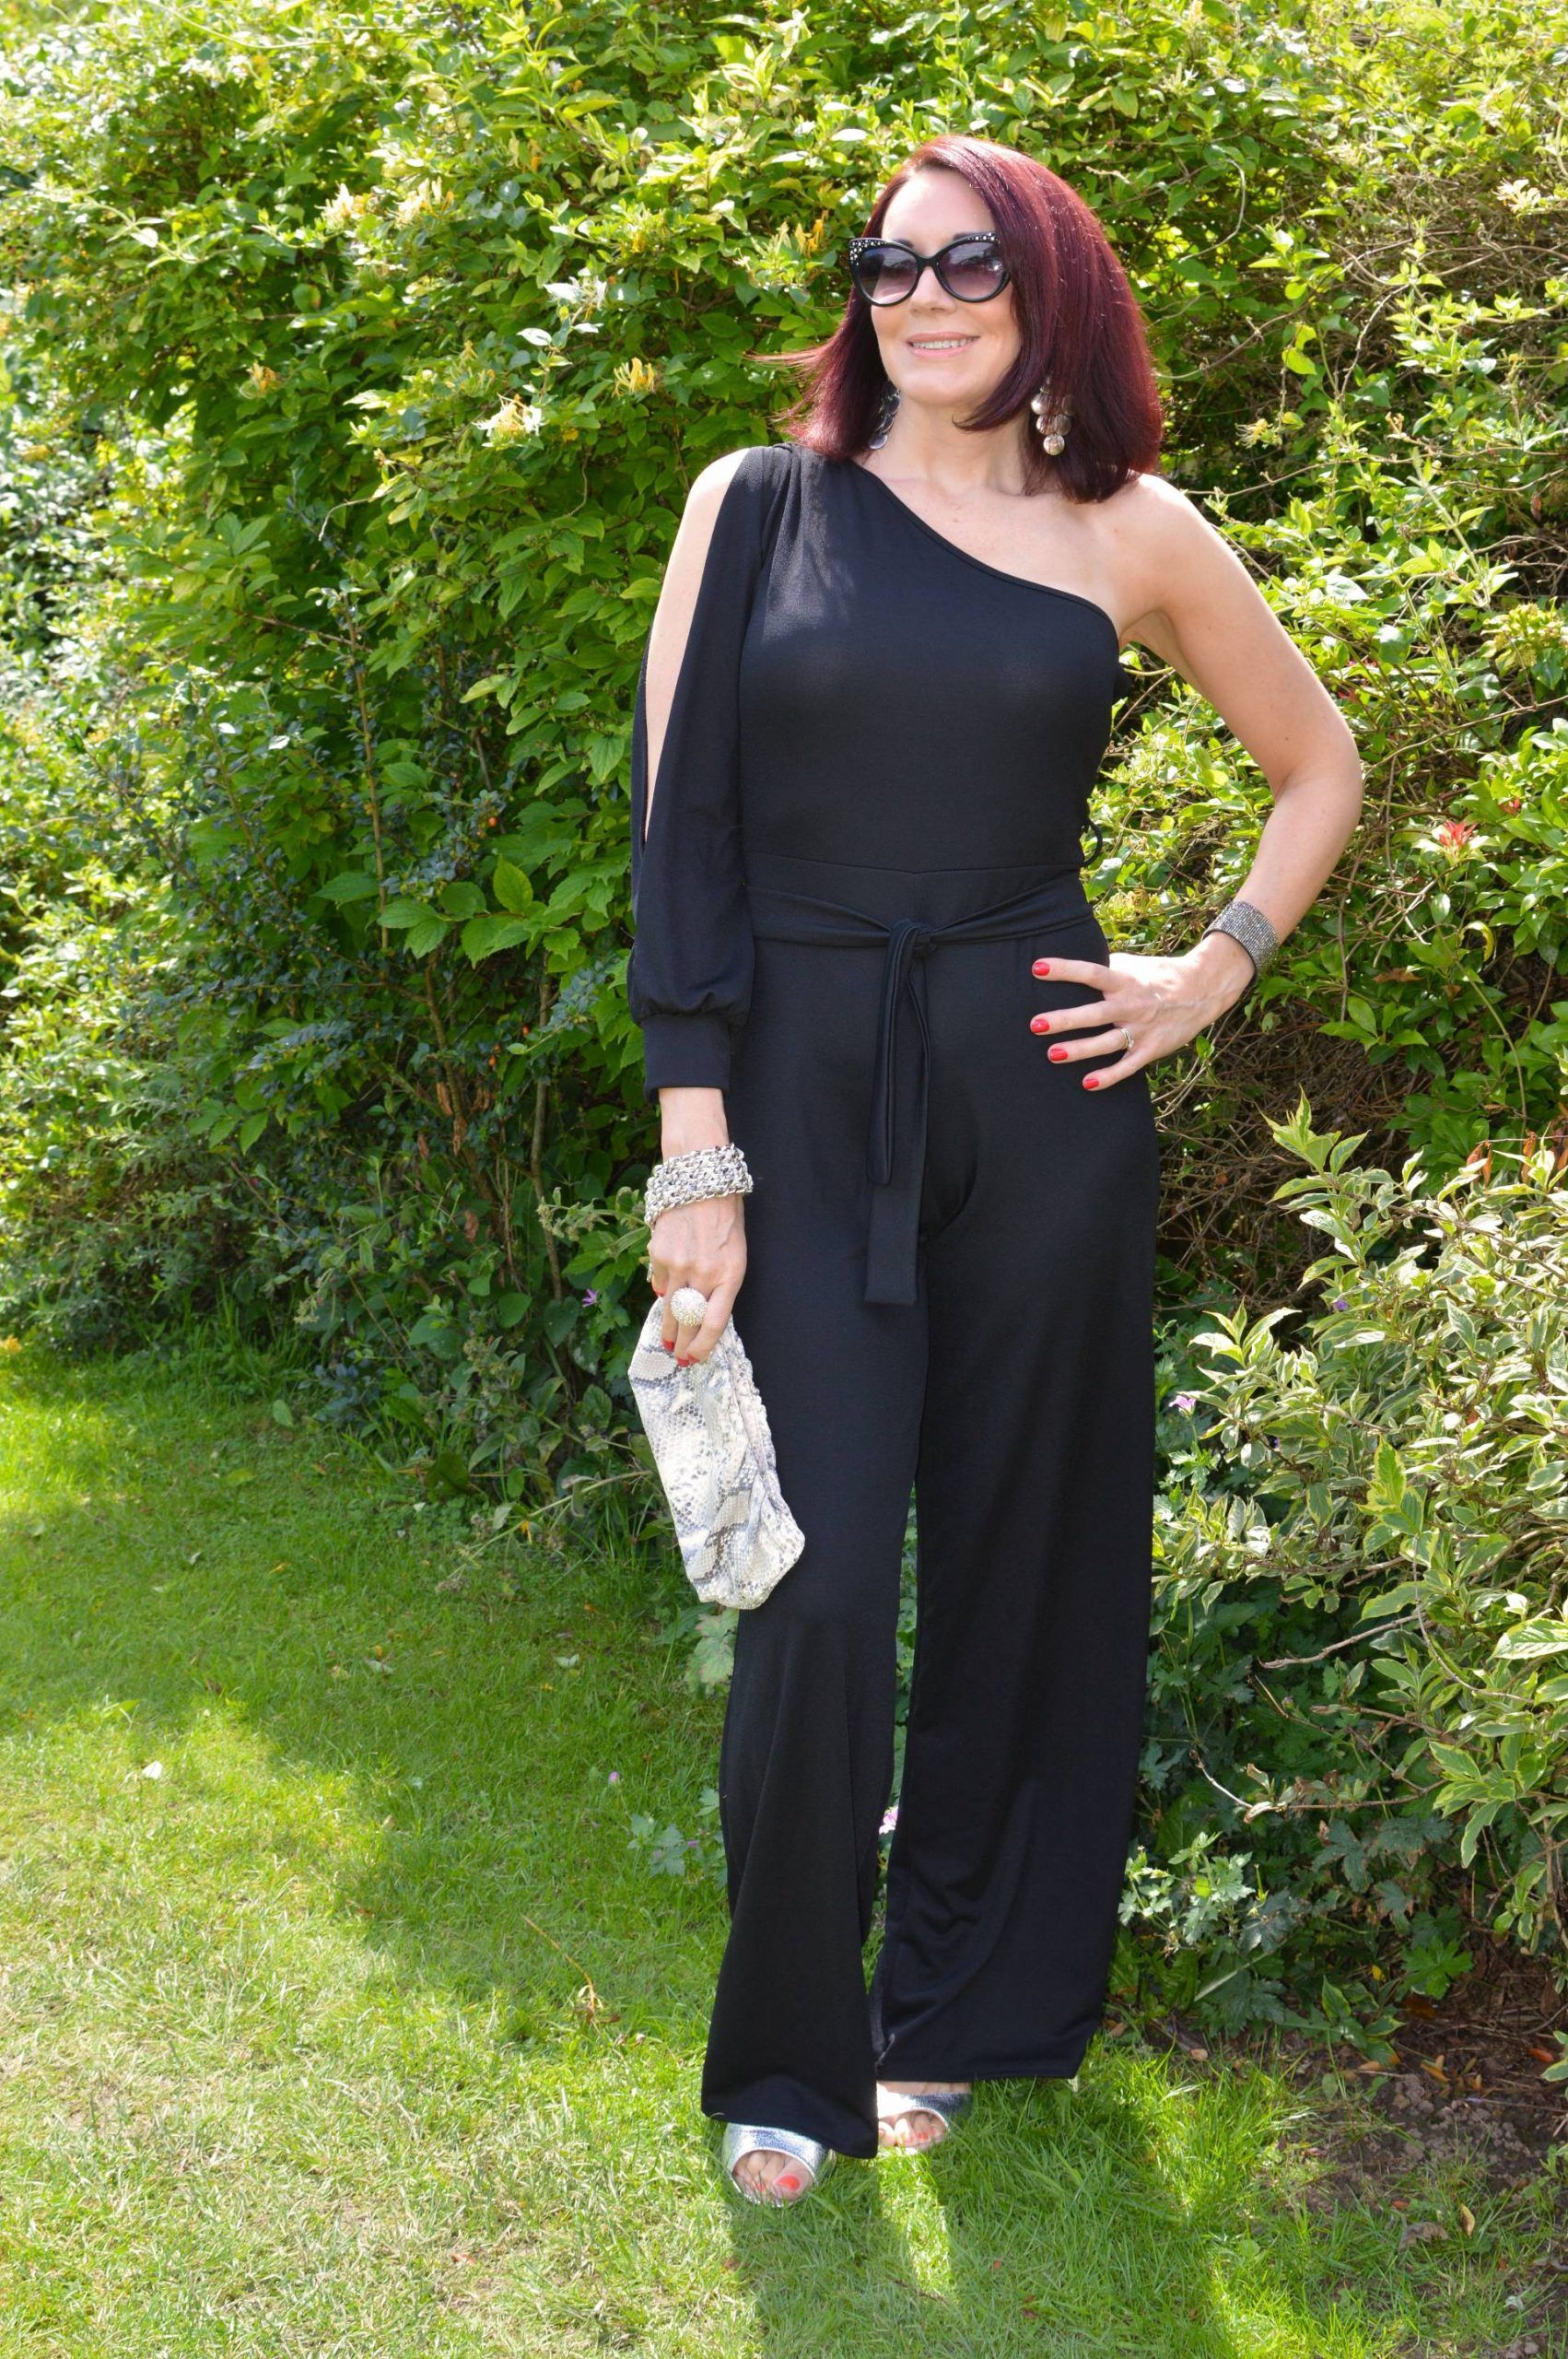 Black Split Sleeve Jumpsuit With Silver Accessories Jumpsuit With Sleeves Comfortable Outfits Jumpsuit [ 2560 x 1702 Pixel ]